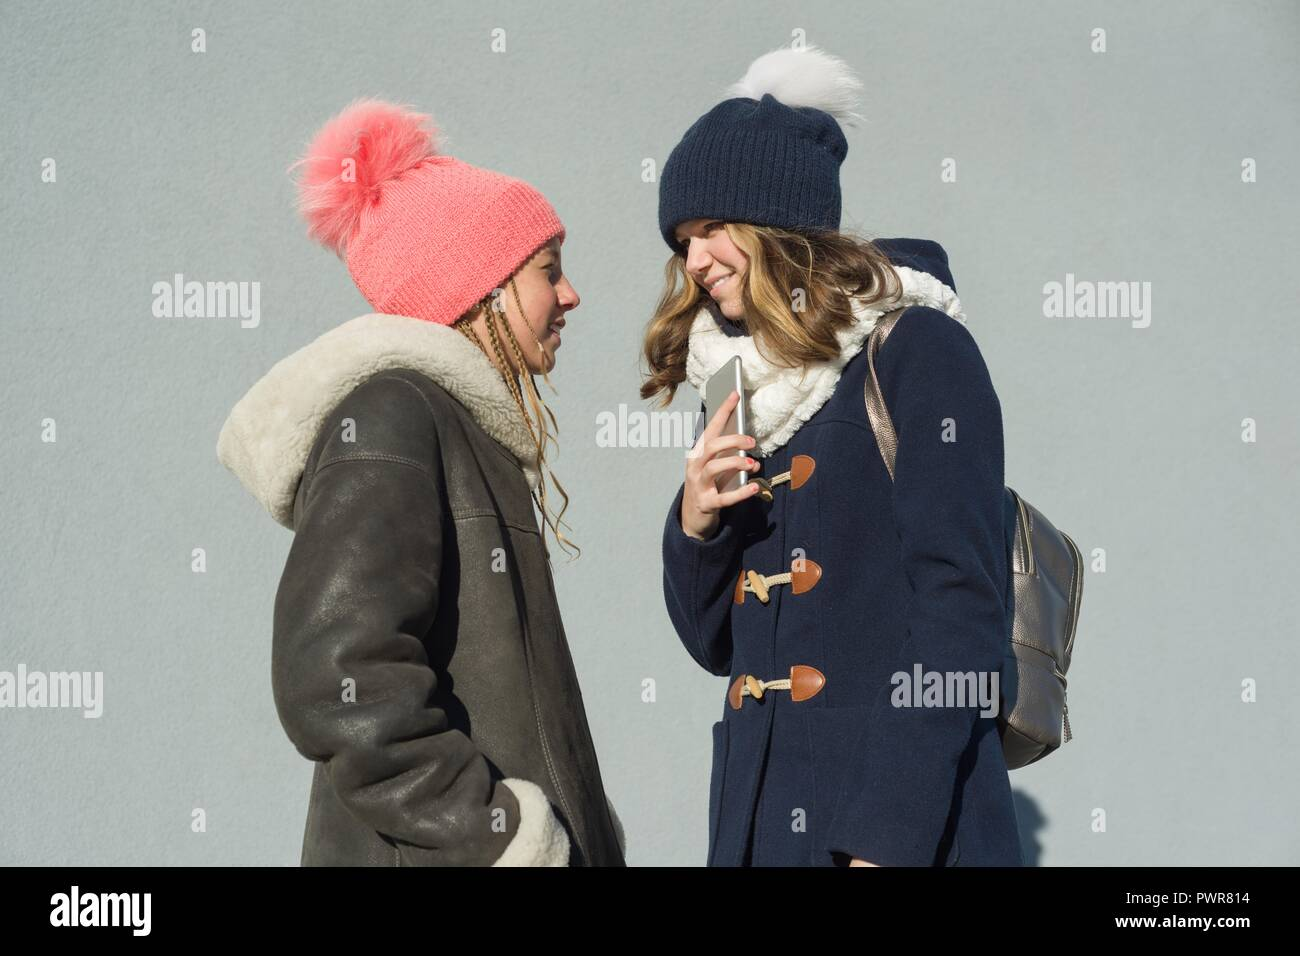 Close-up of an outdoor winter portrait of two teenage girls students in a profile smiling and talking. - Stock Image